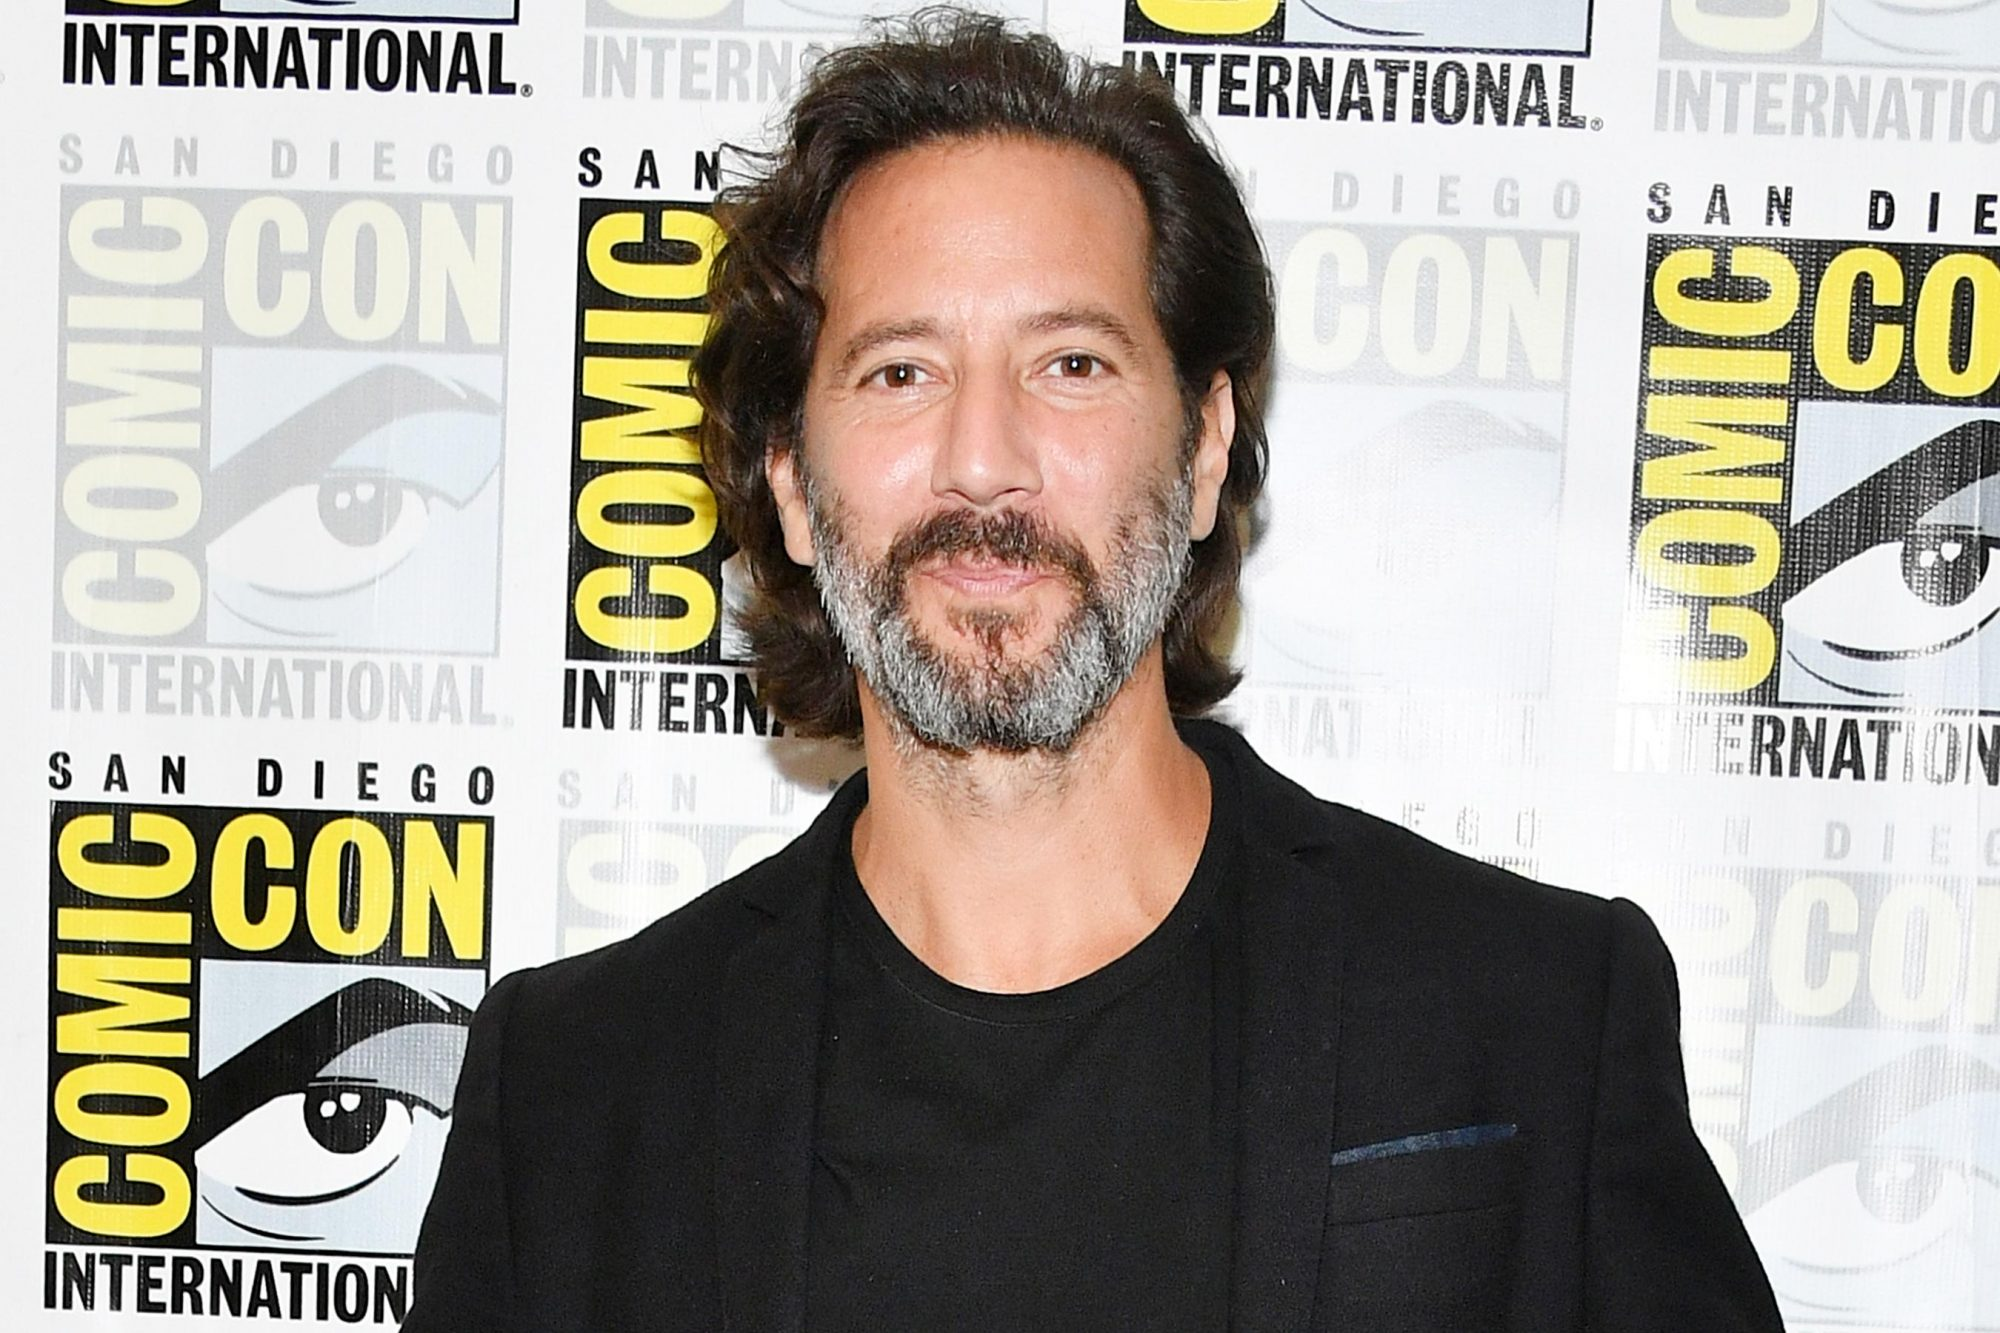 SAN DIEGO, CA - JULY 20: Henry Ian Cusick attends 'The Passage' Press Line during Comic-Con International 2018 at Hilton Bayfront on July 20, 2018 in San Diego, California. (Photo by Dia Dipasupil/Getty Images)